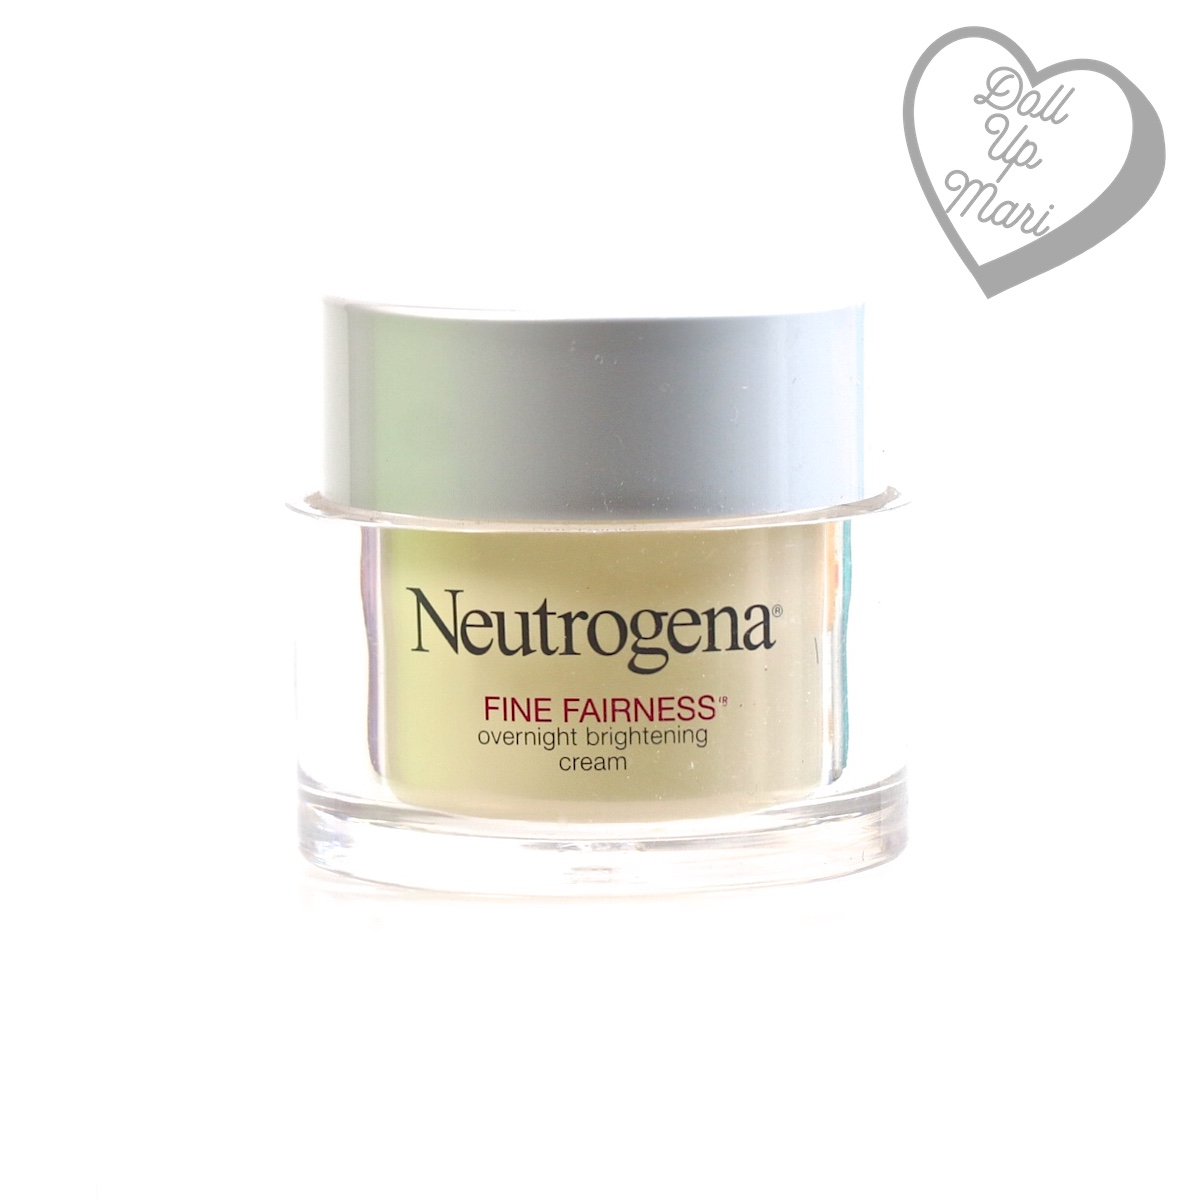 Neutrogena Overnight Fine Fairness Brightening Cream